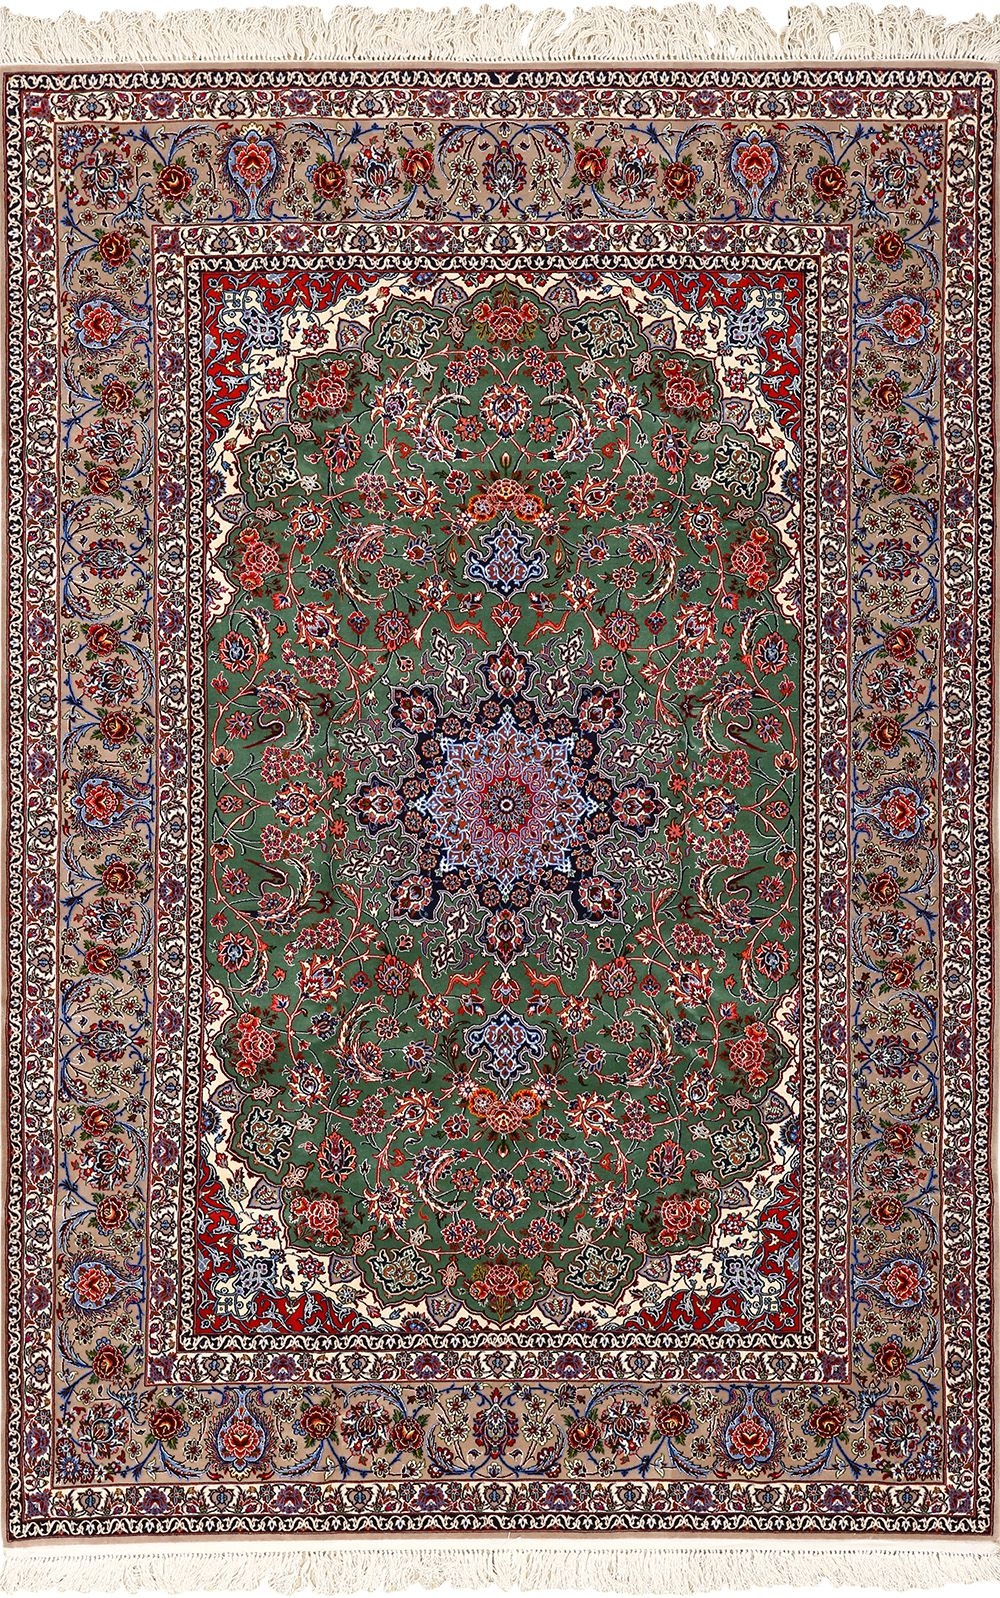 Intricate Vintage Isfahan Persian Rug 51153 Nazmiyal Persian Rugs Pertaining To Green Persian Rugs (Image 15 of 15)